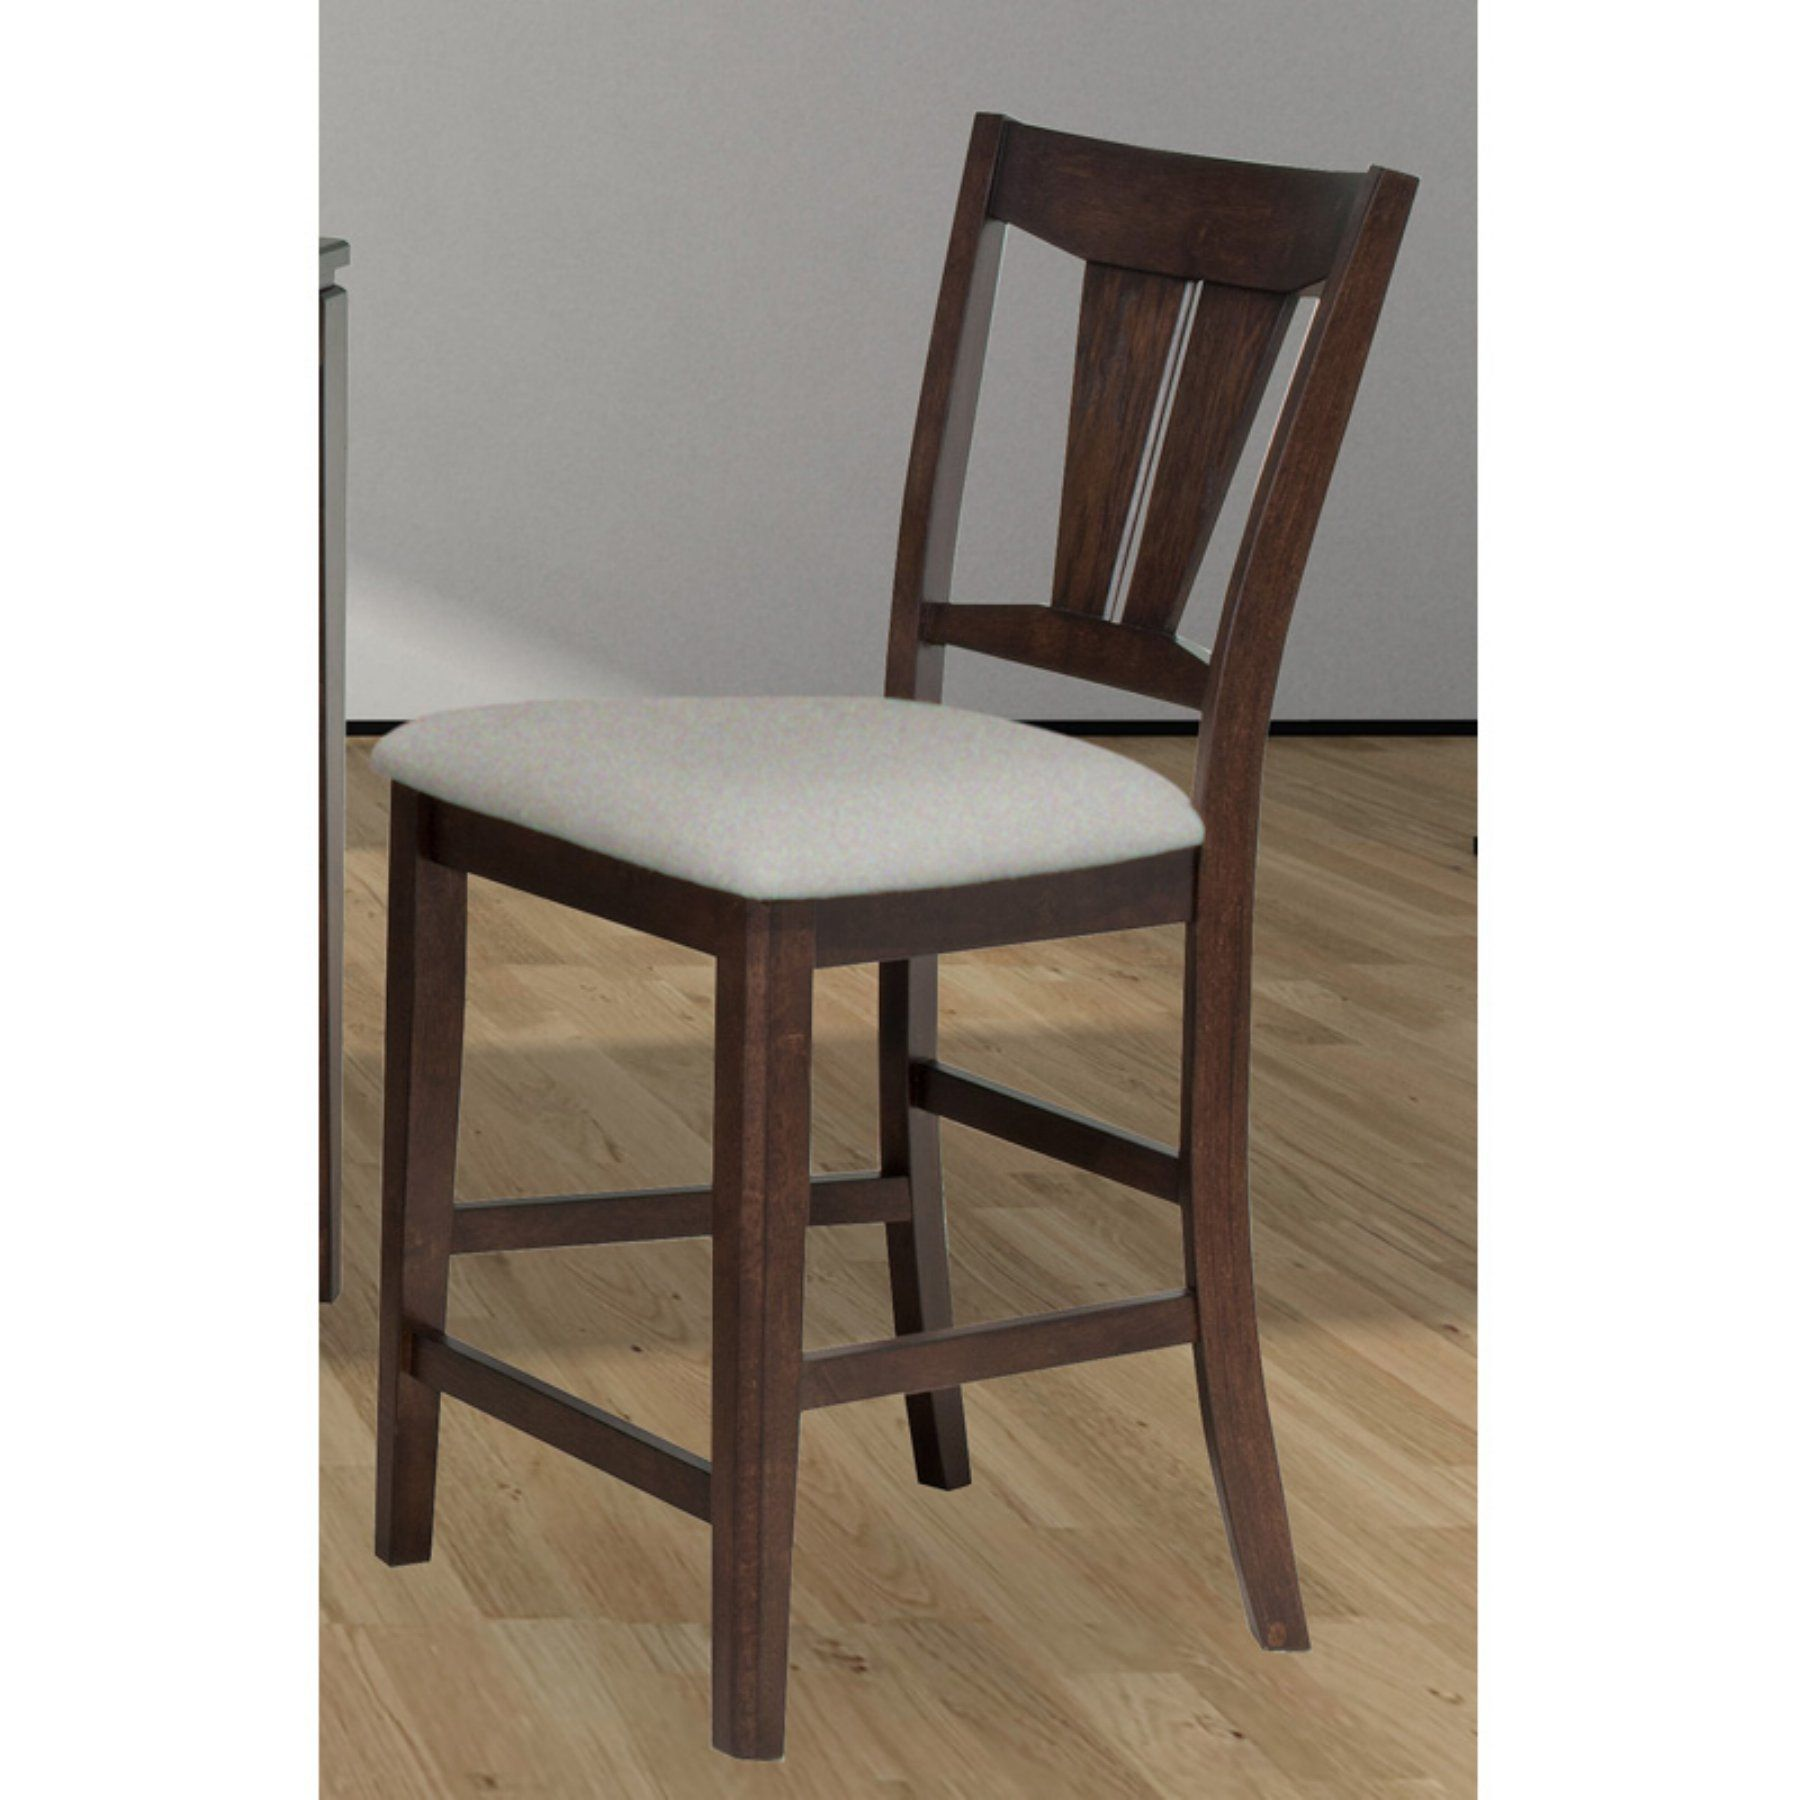 Bernards Cameron Counter Height Stools 5519 Counter